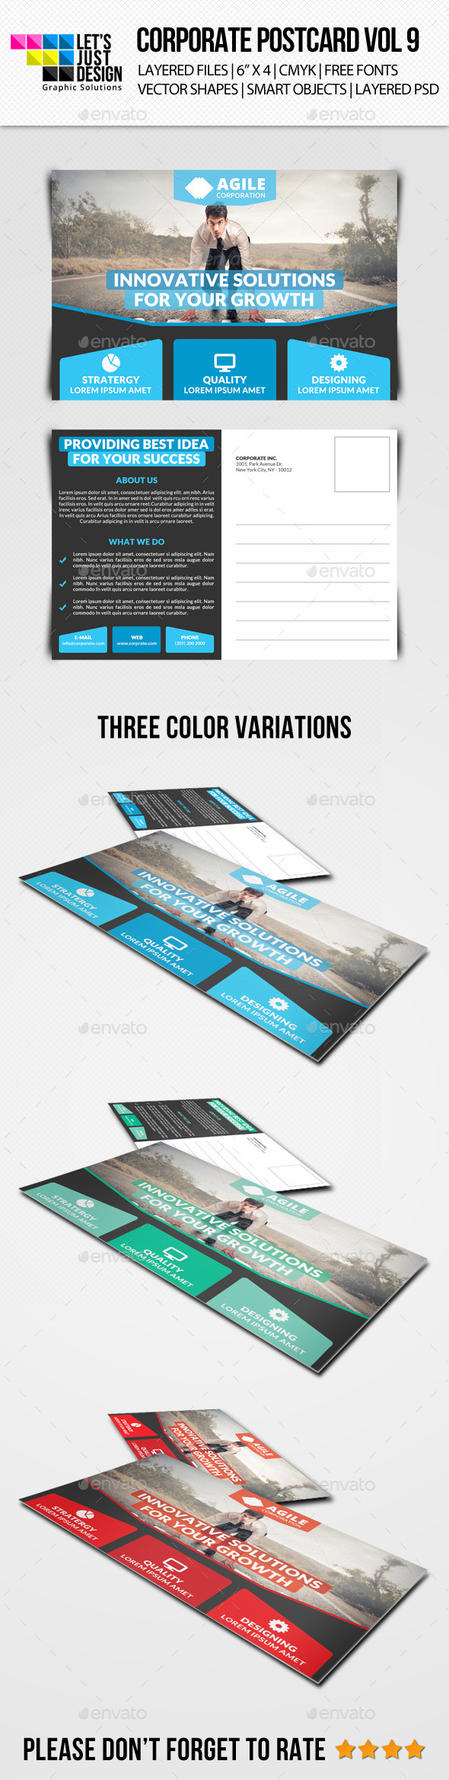 Corporate Postcard Template Vol 9 by jasonmendes